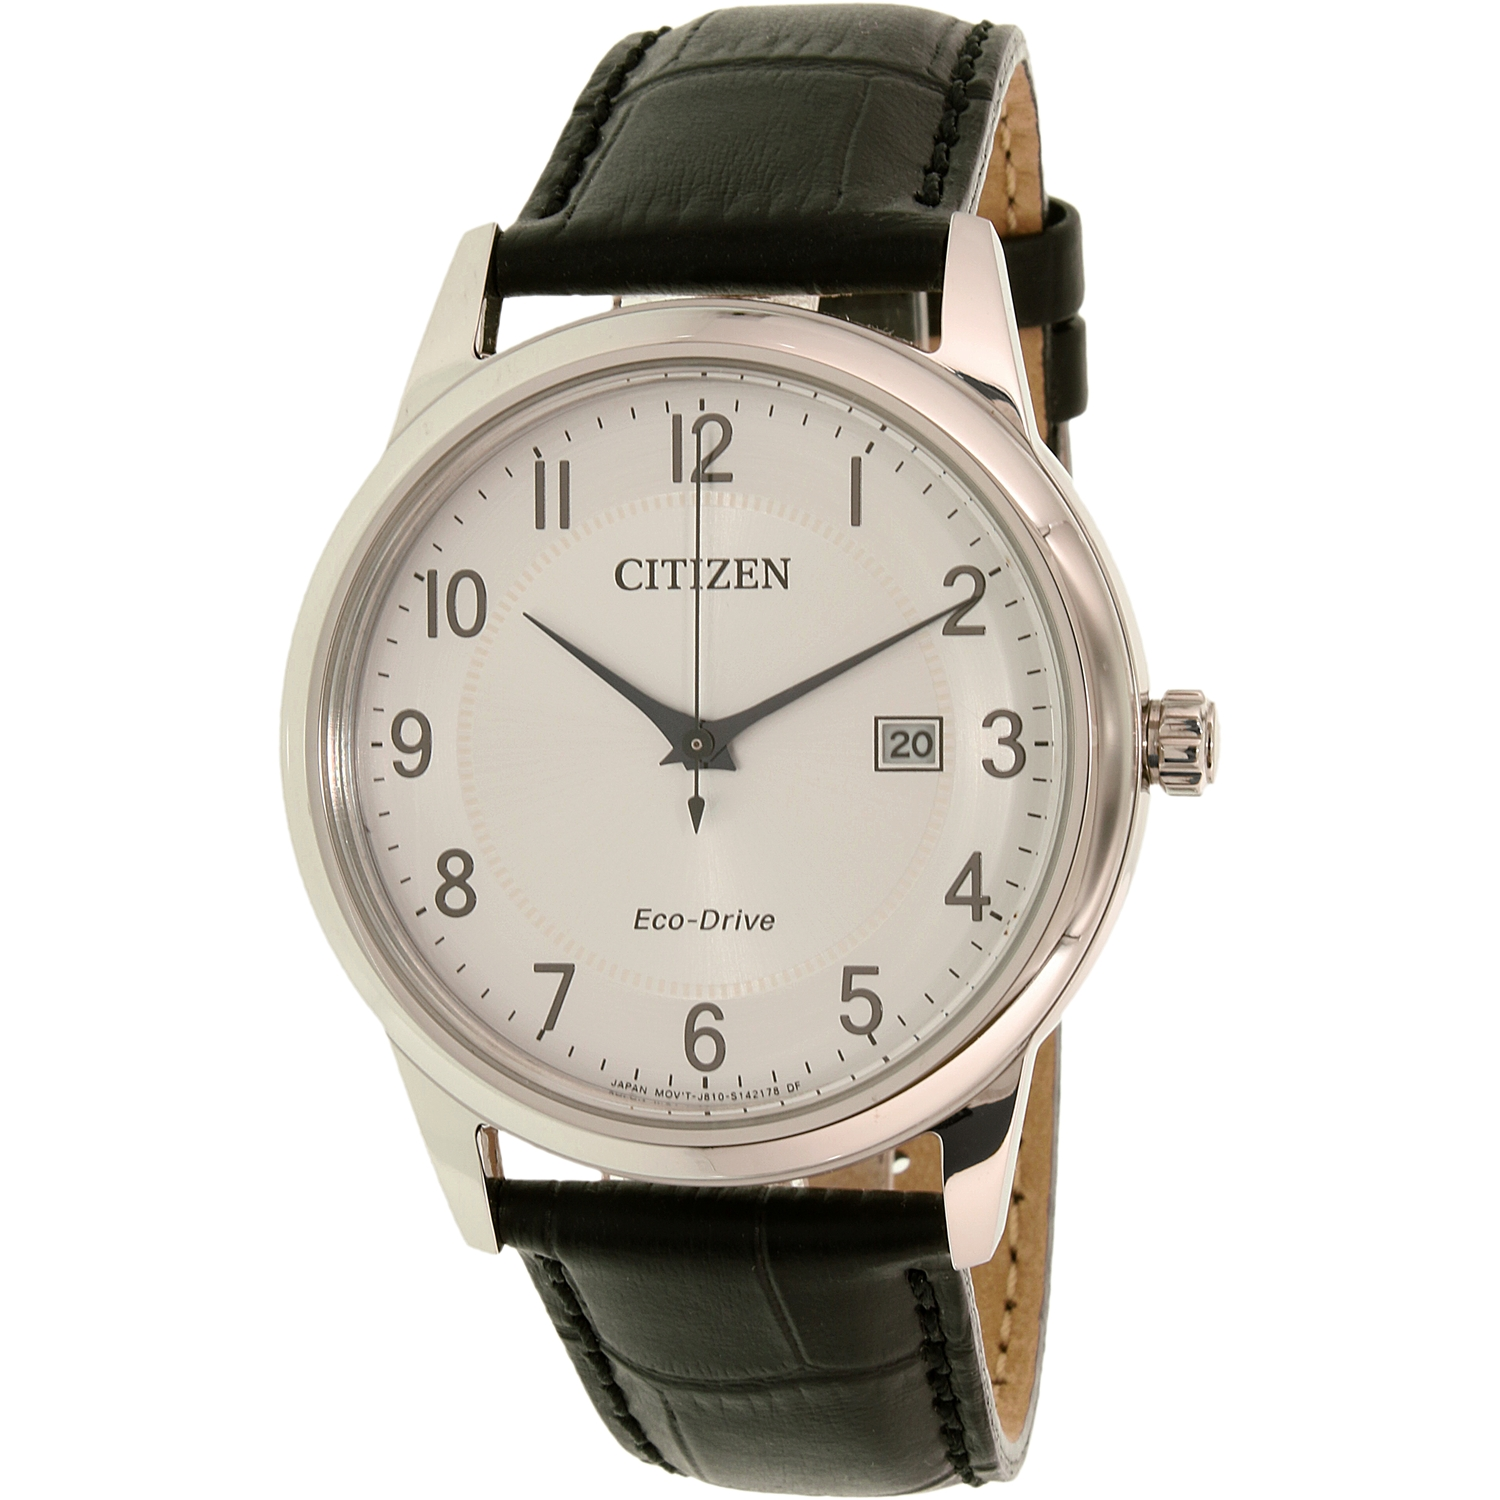 Citizen Men's Eco-Drive AW1231-07A Black Leather Eco-Drive Dress Watch